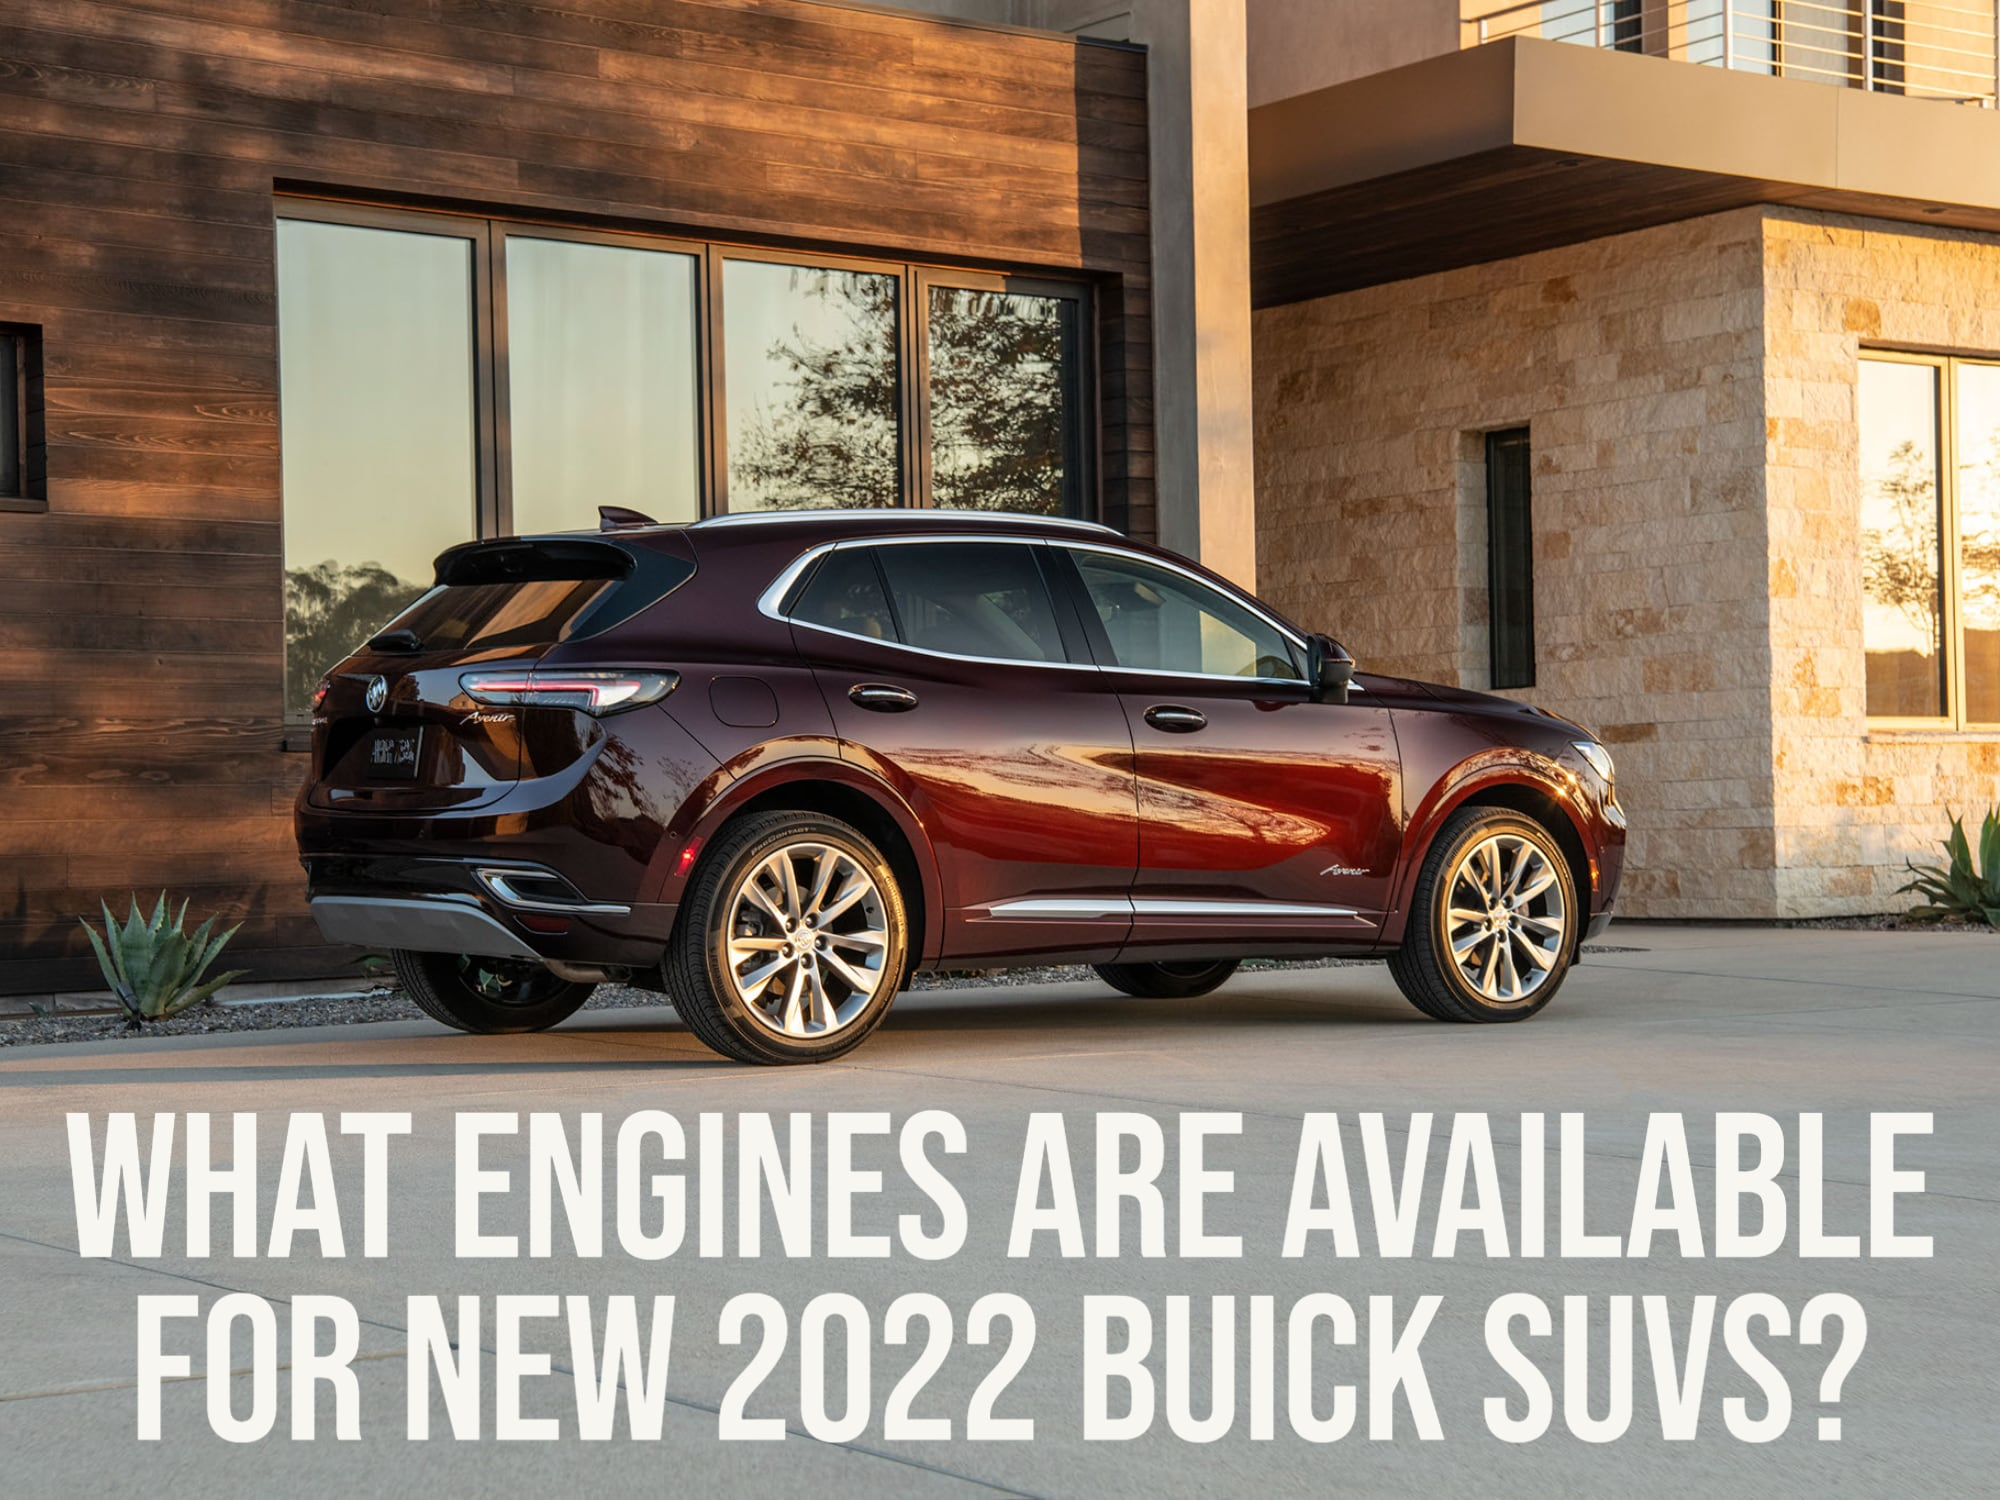 Rear 3/4 View of Buick Envision